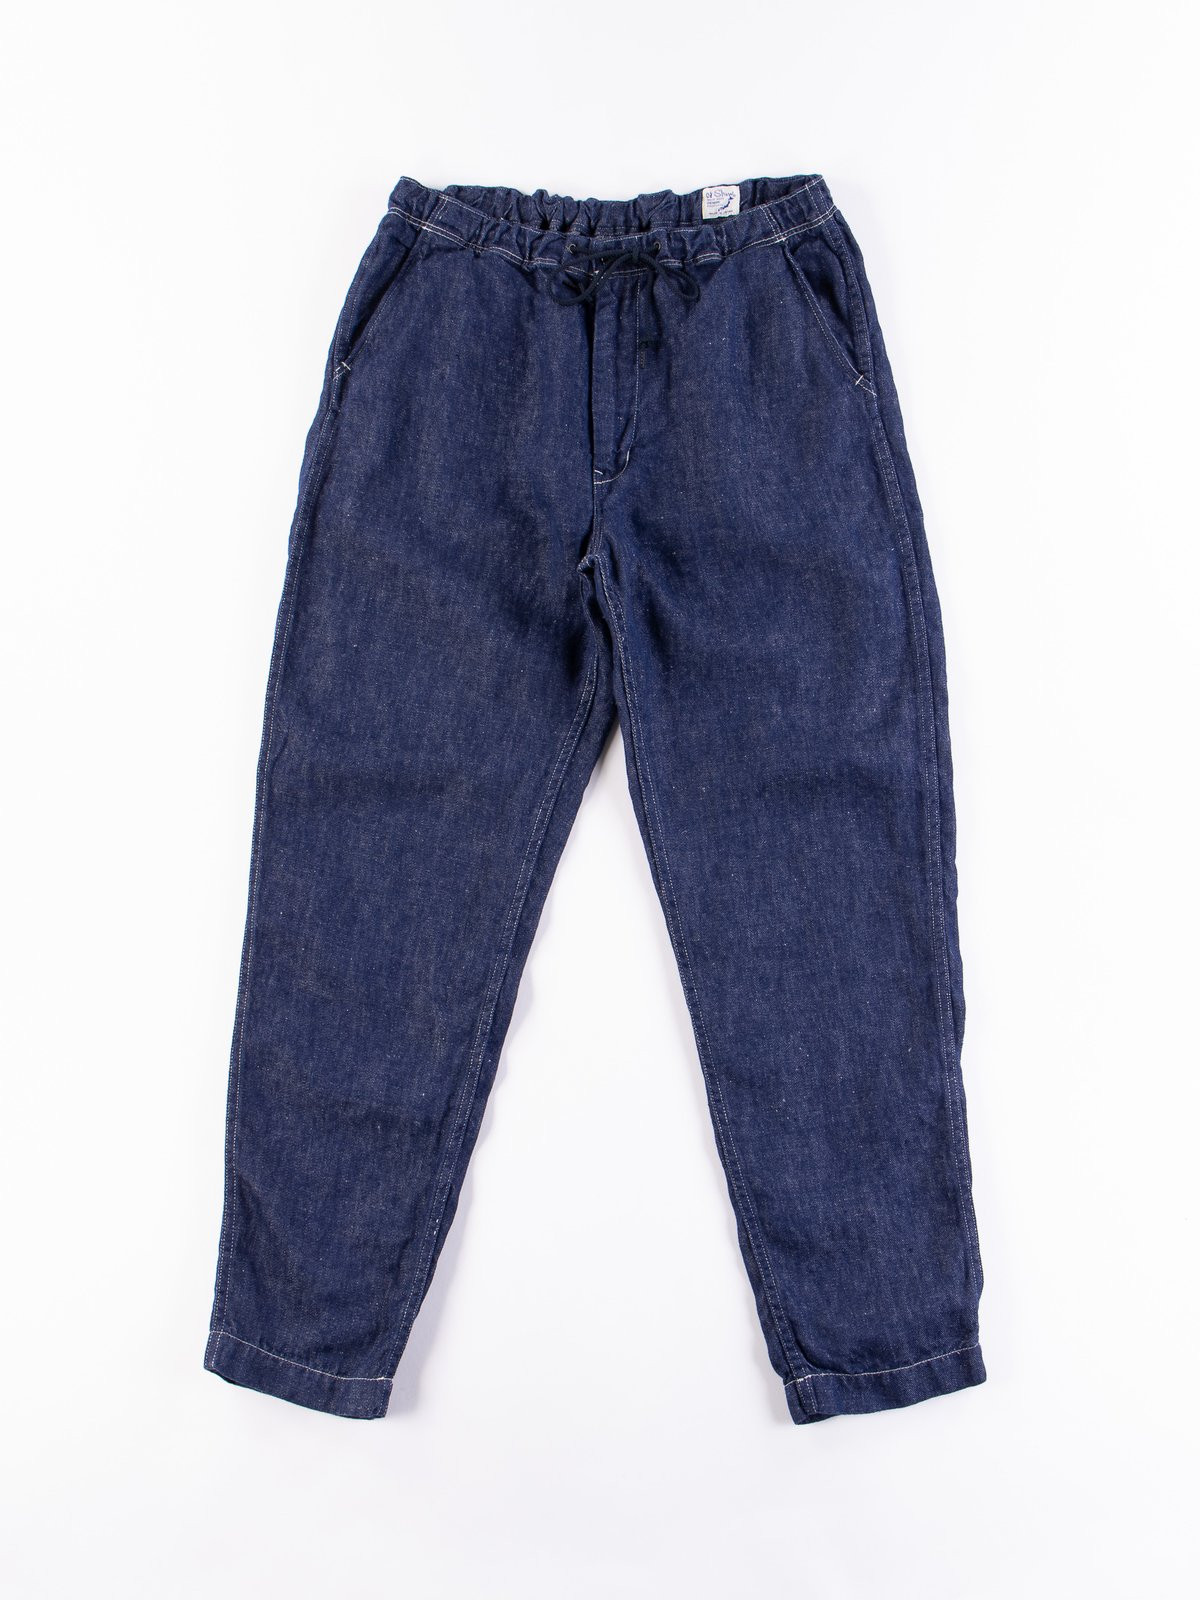 One Wash Denim TBB Mill Pant - Image 1